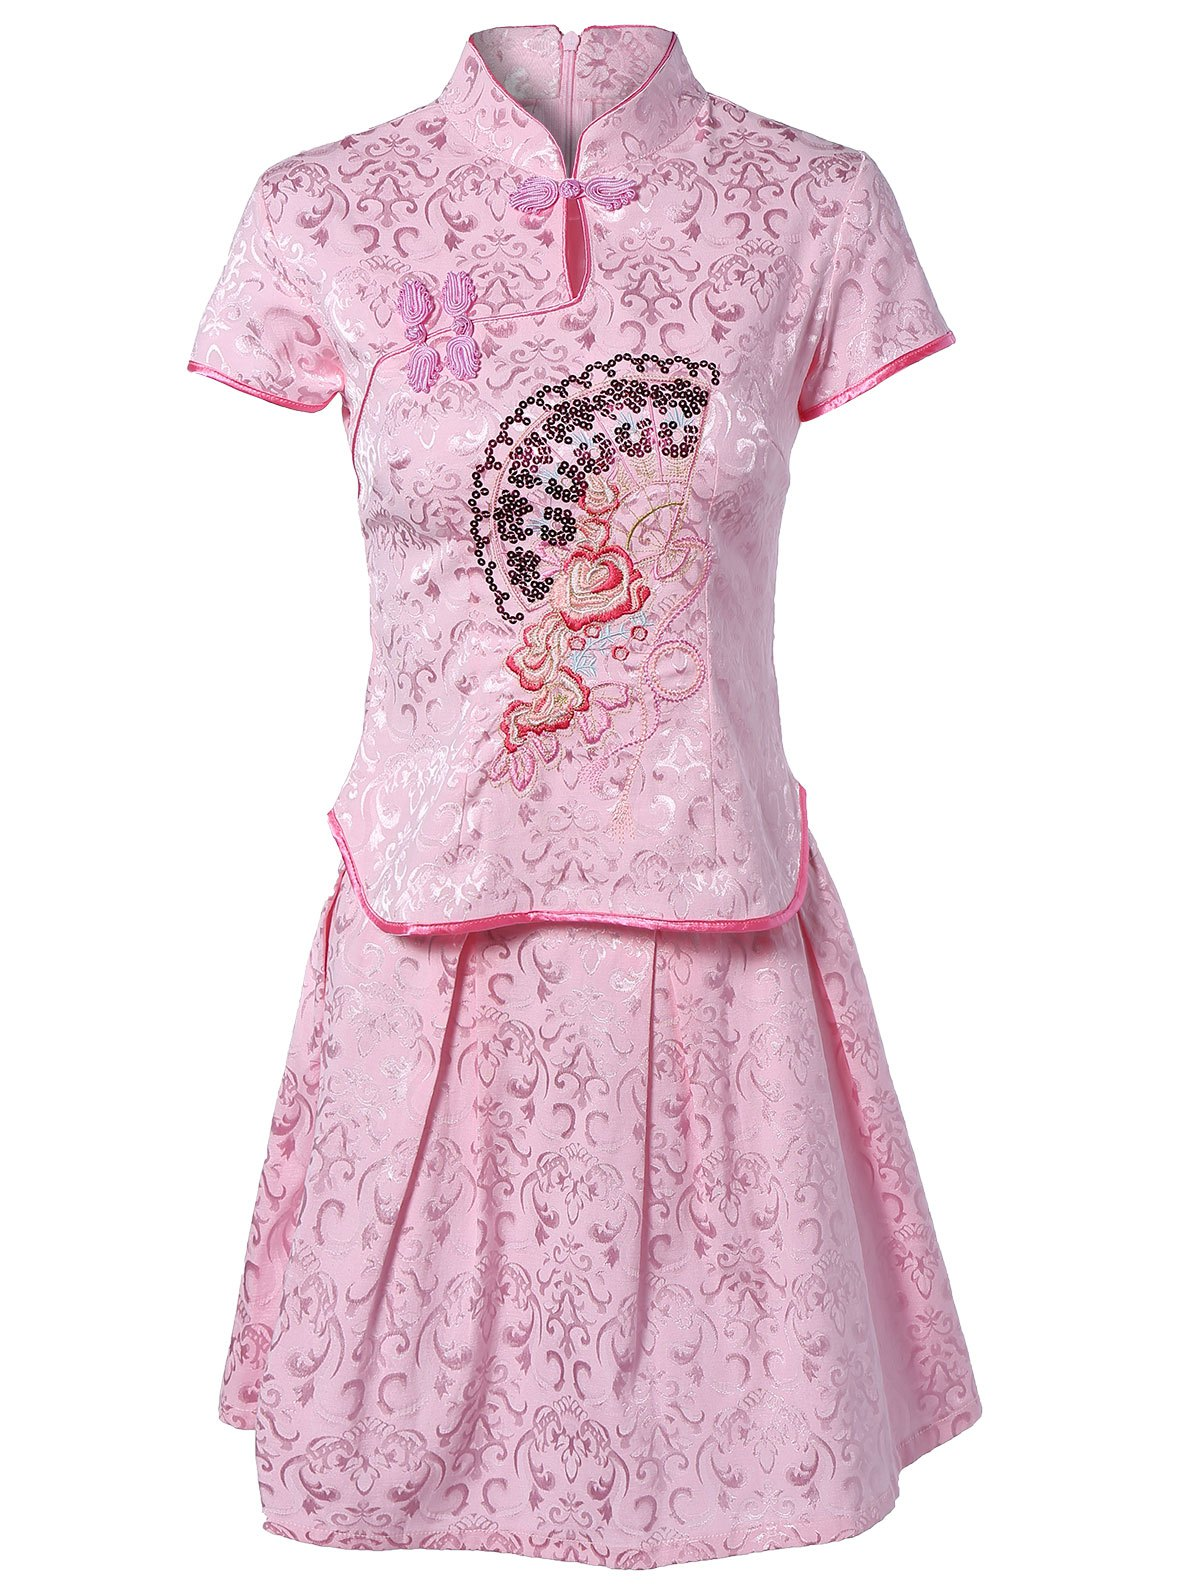 Chinoiserie Embroidered Top and Jacquard Skirt Set For Women - PINK L